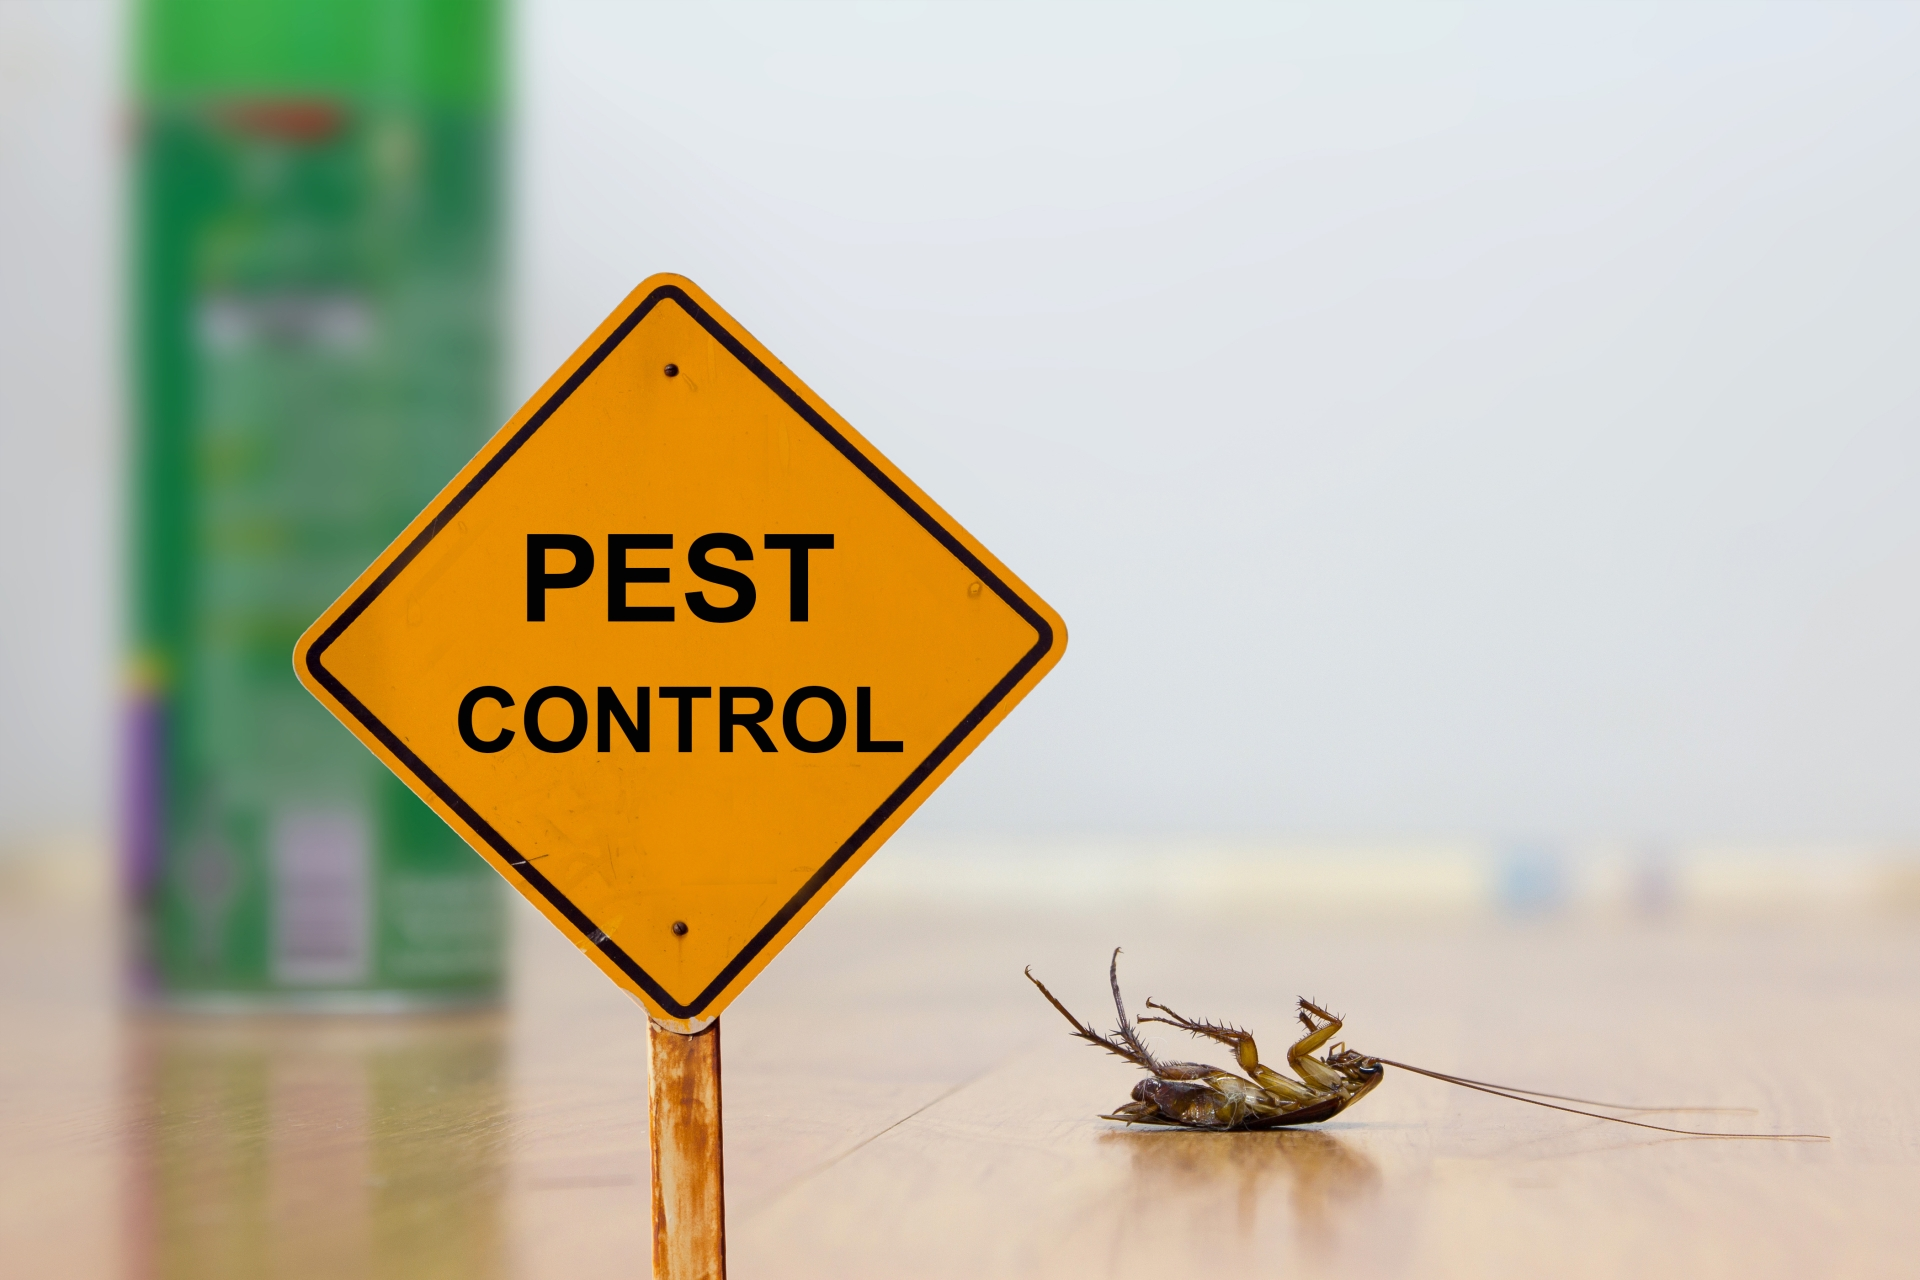 24 Hour Pest Control, Pest Control in North Feltham, East Bedfont, TW14. Call Now 020 8166 9746